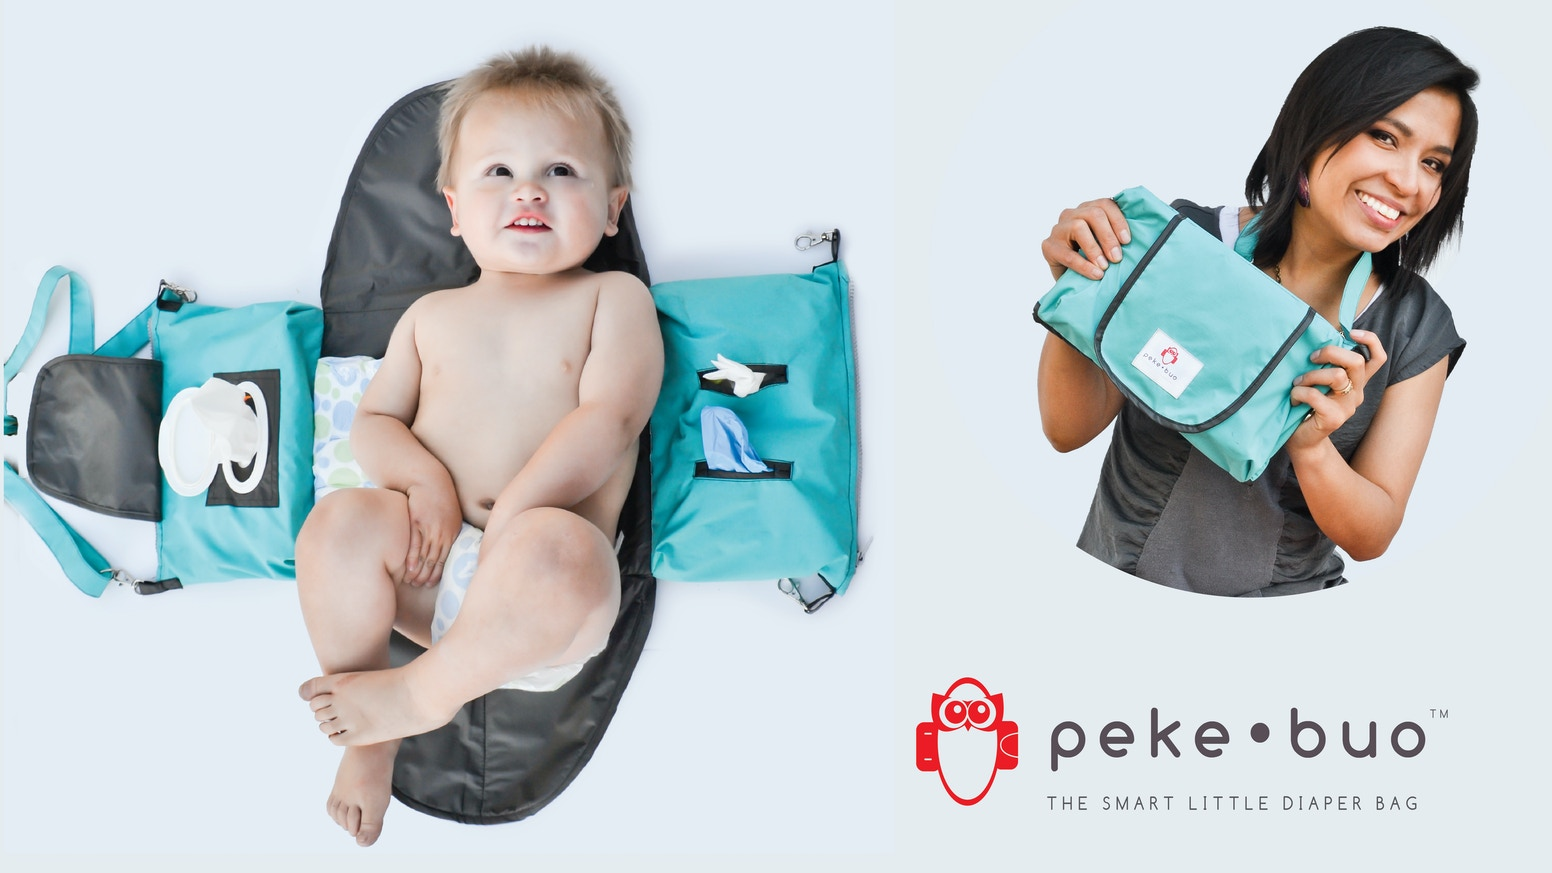 The diaper bag, revolutionized - super compact, unfolds into a changing station, instant access to everything you need for baby.